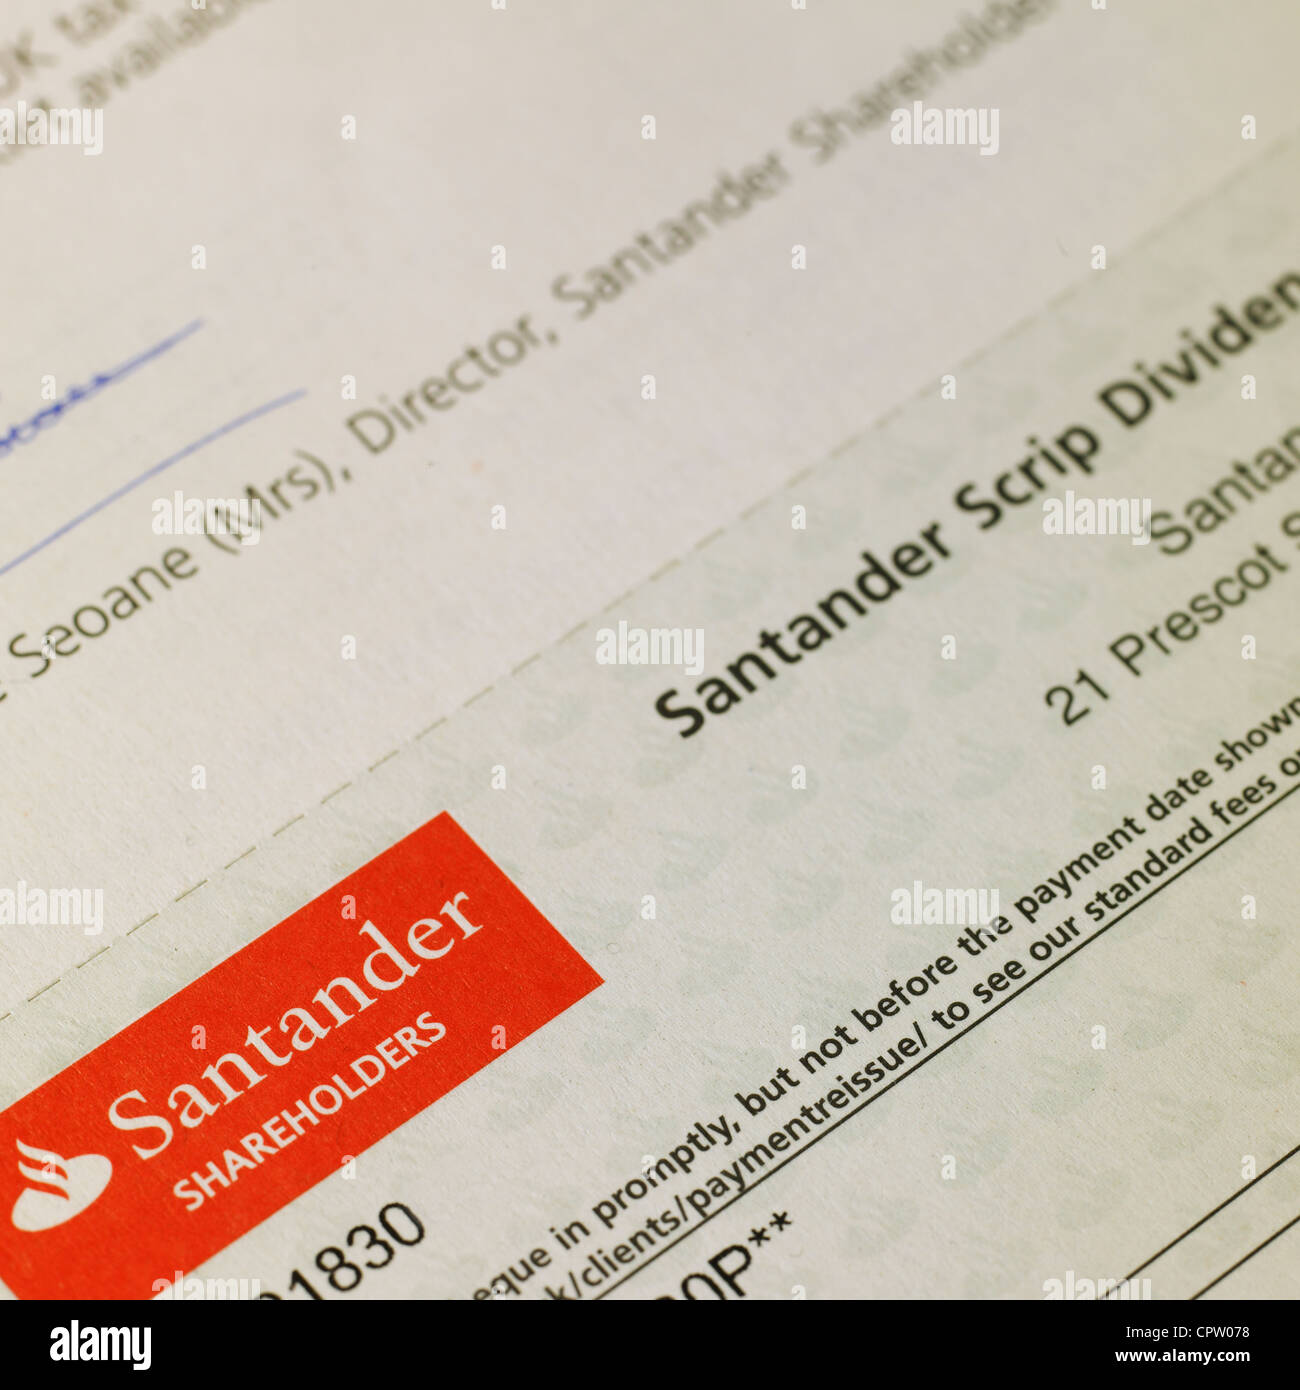 Santander Shareholders Scrip Dividend cheque - Stock Image